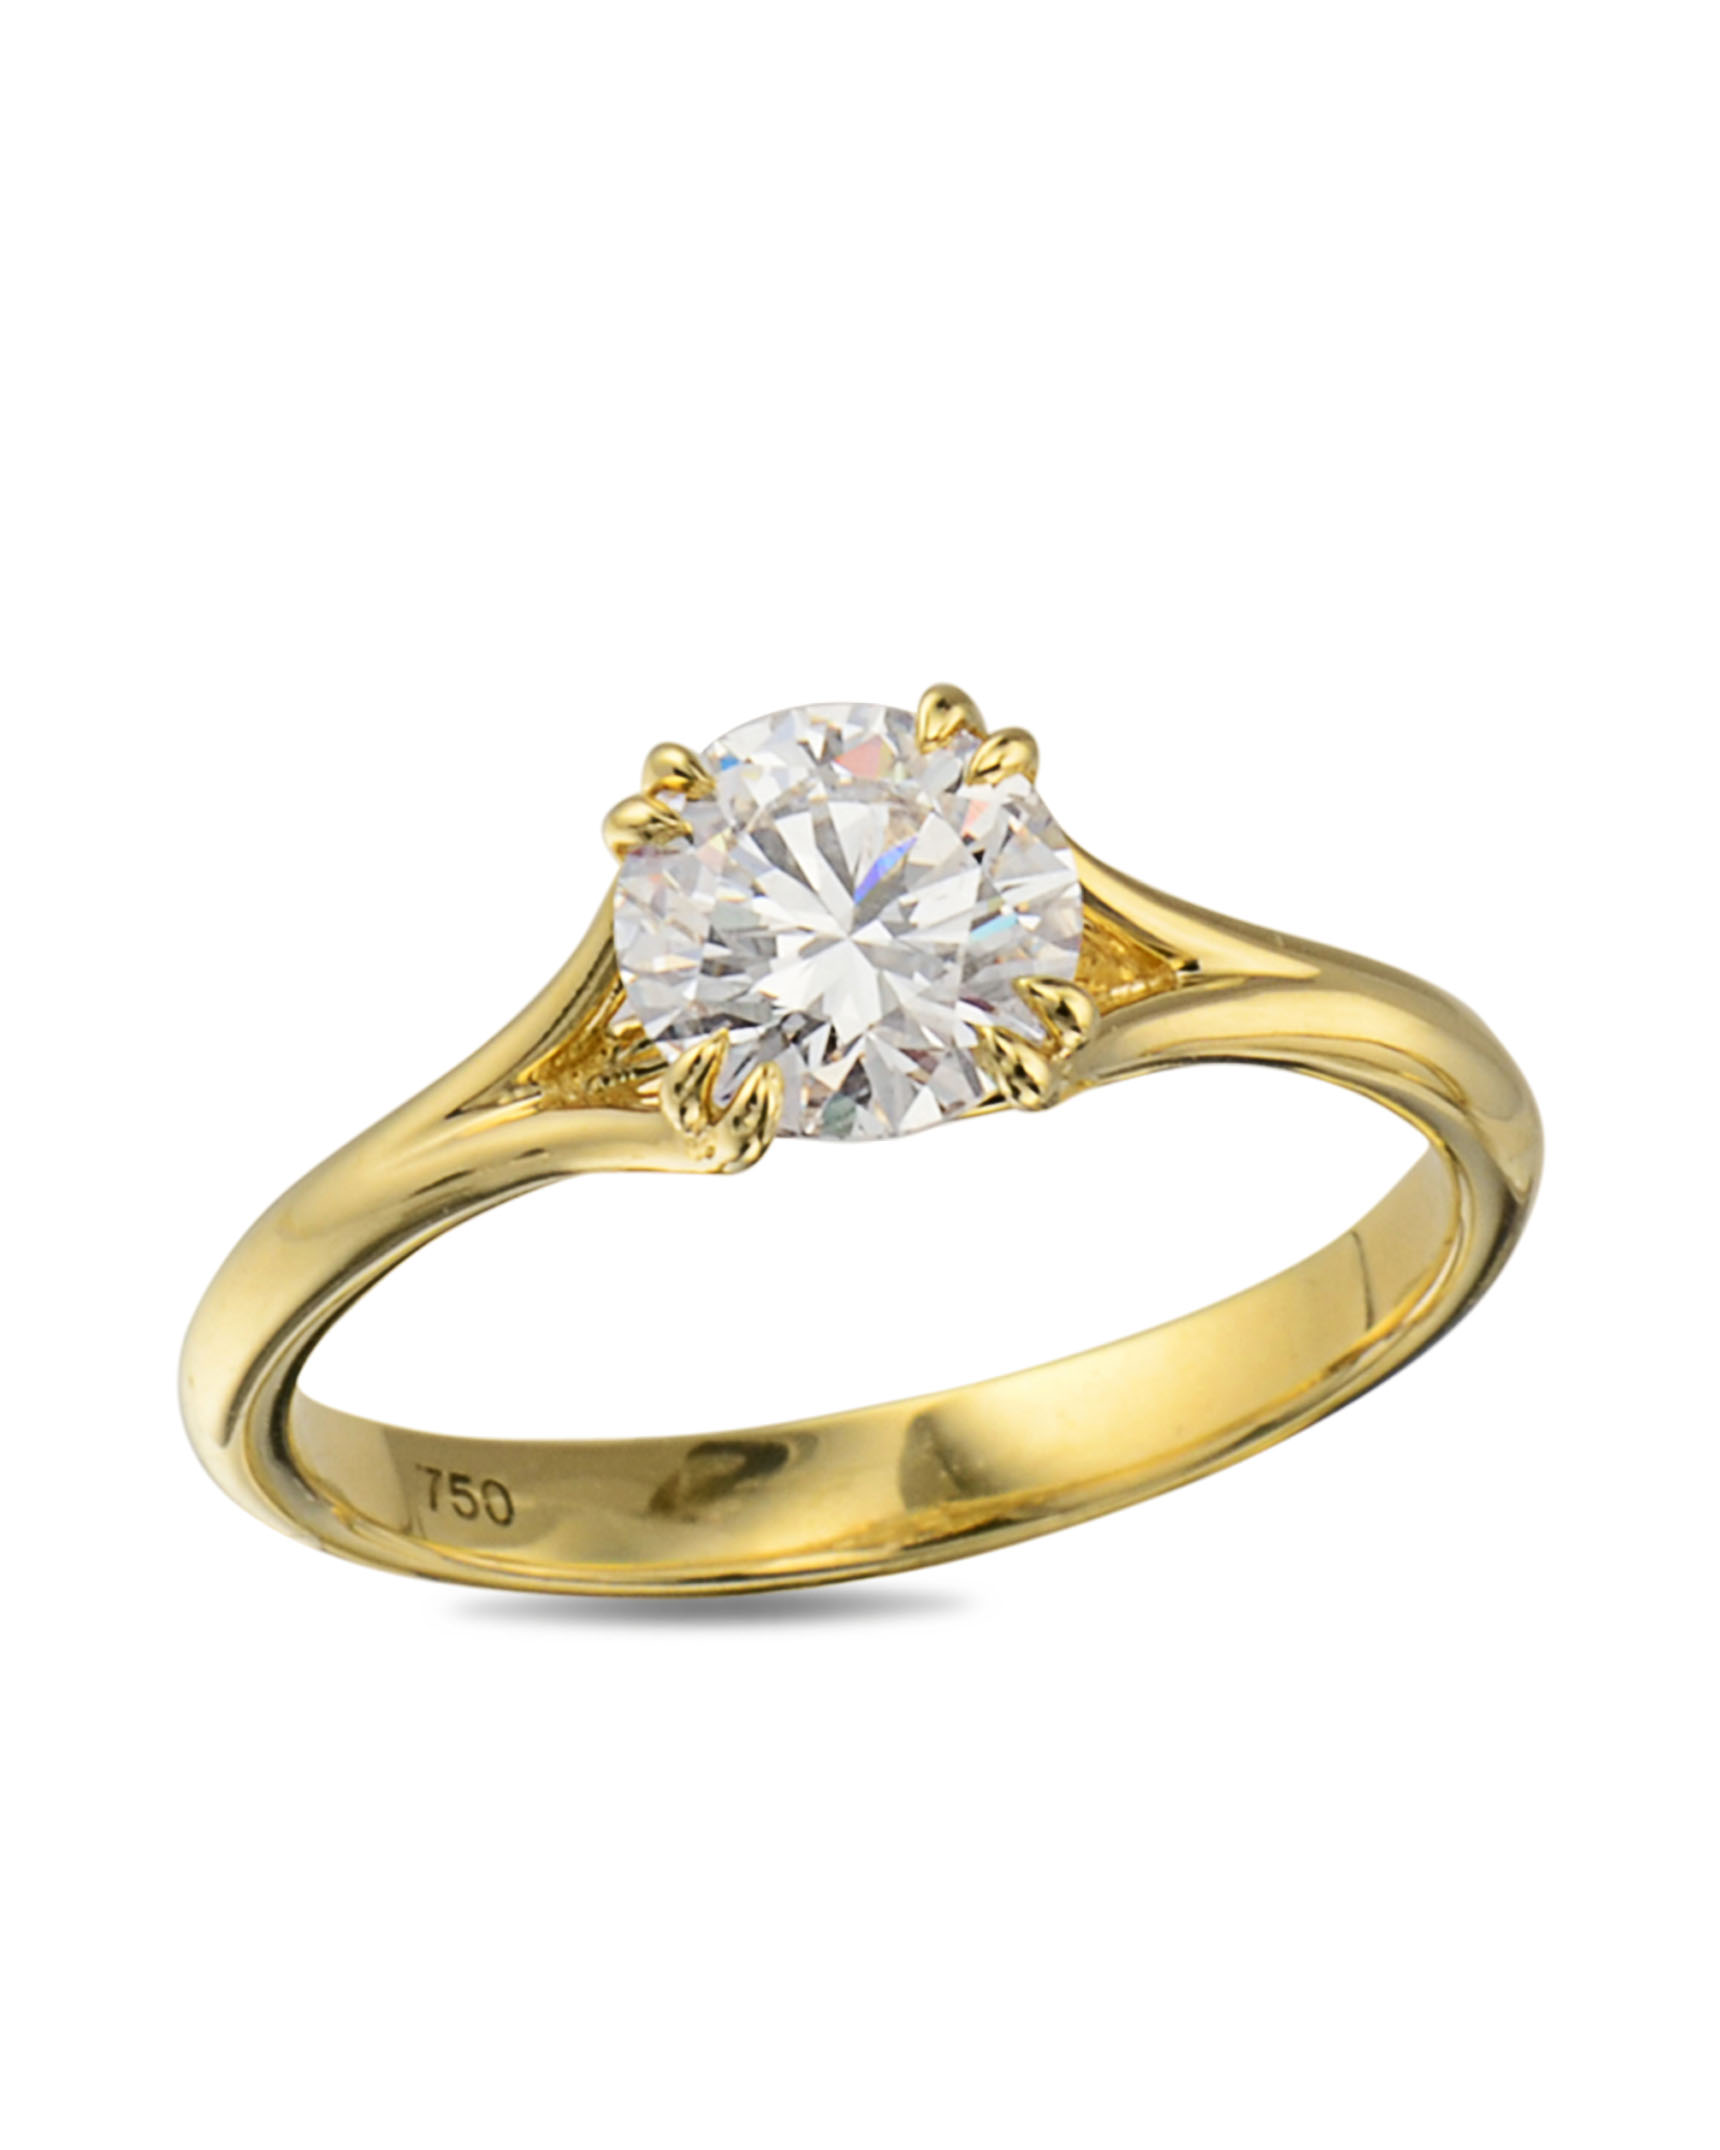 rings solitaire foundry simple gold engagement prong rose products marie claw diamond altana ring modern